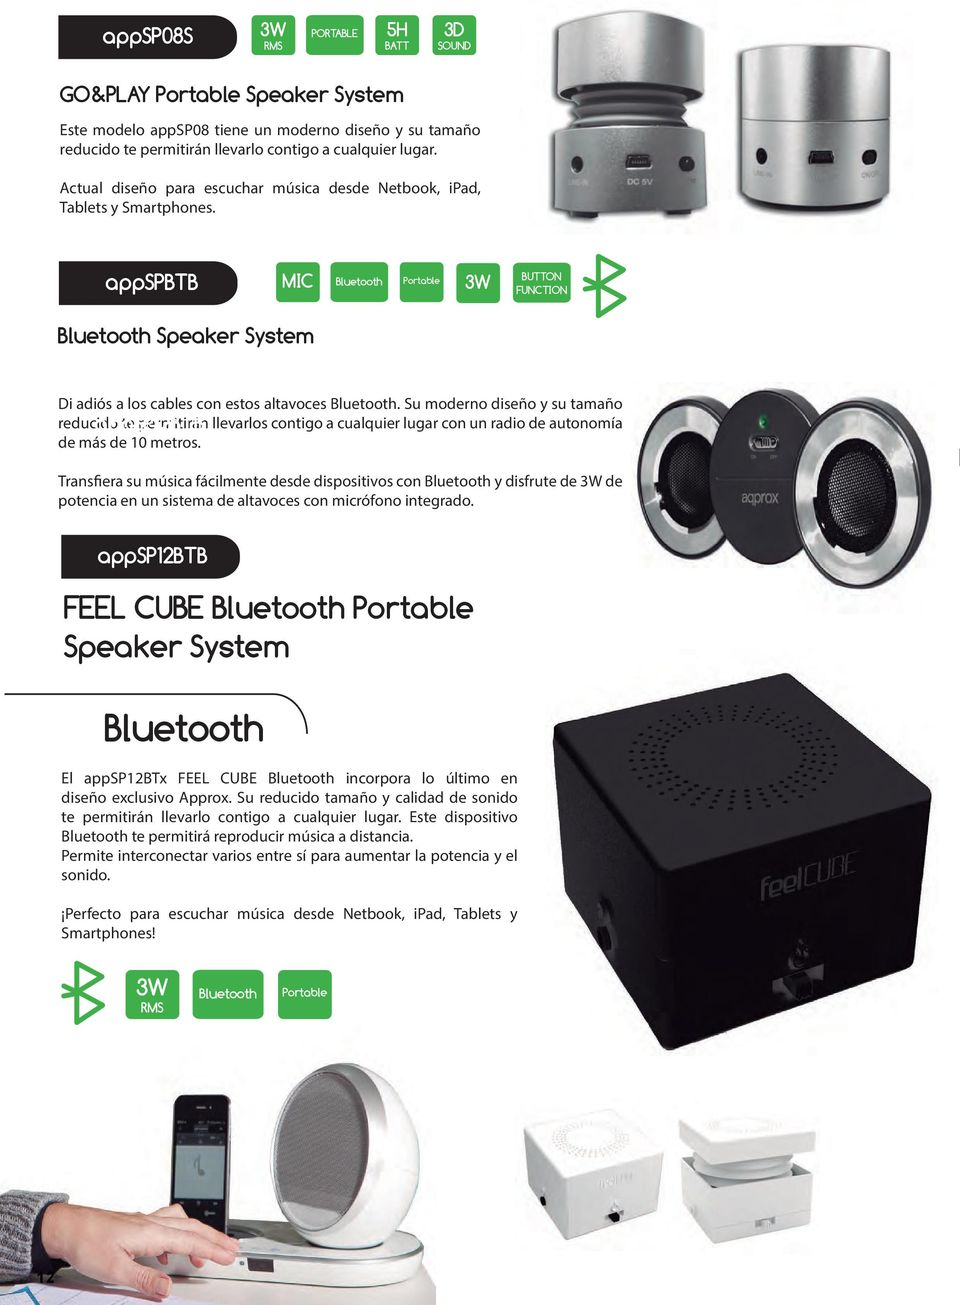 appspbtb MIC Bluetooth Portable 3W BUTTON FUNCTION Bluetooth Speaker System Di adiós a los cables con estos altavoces Bluetooth.